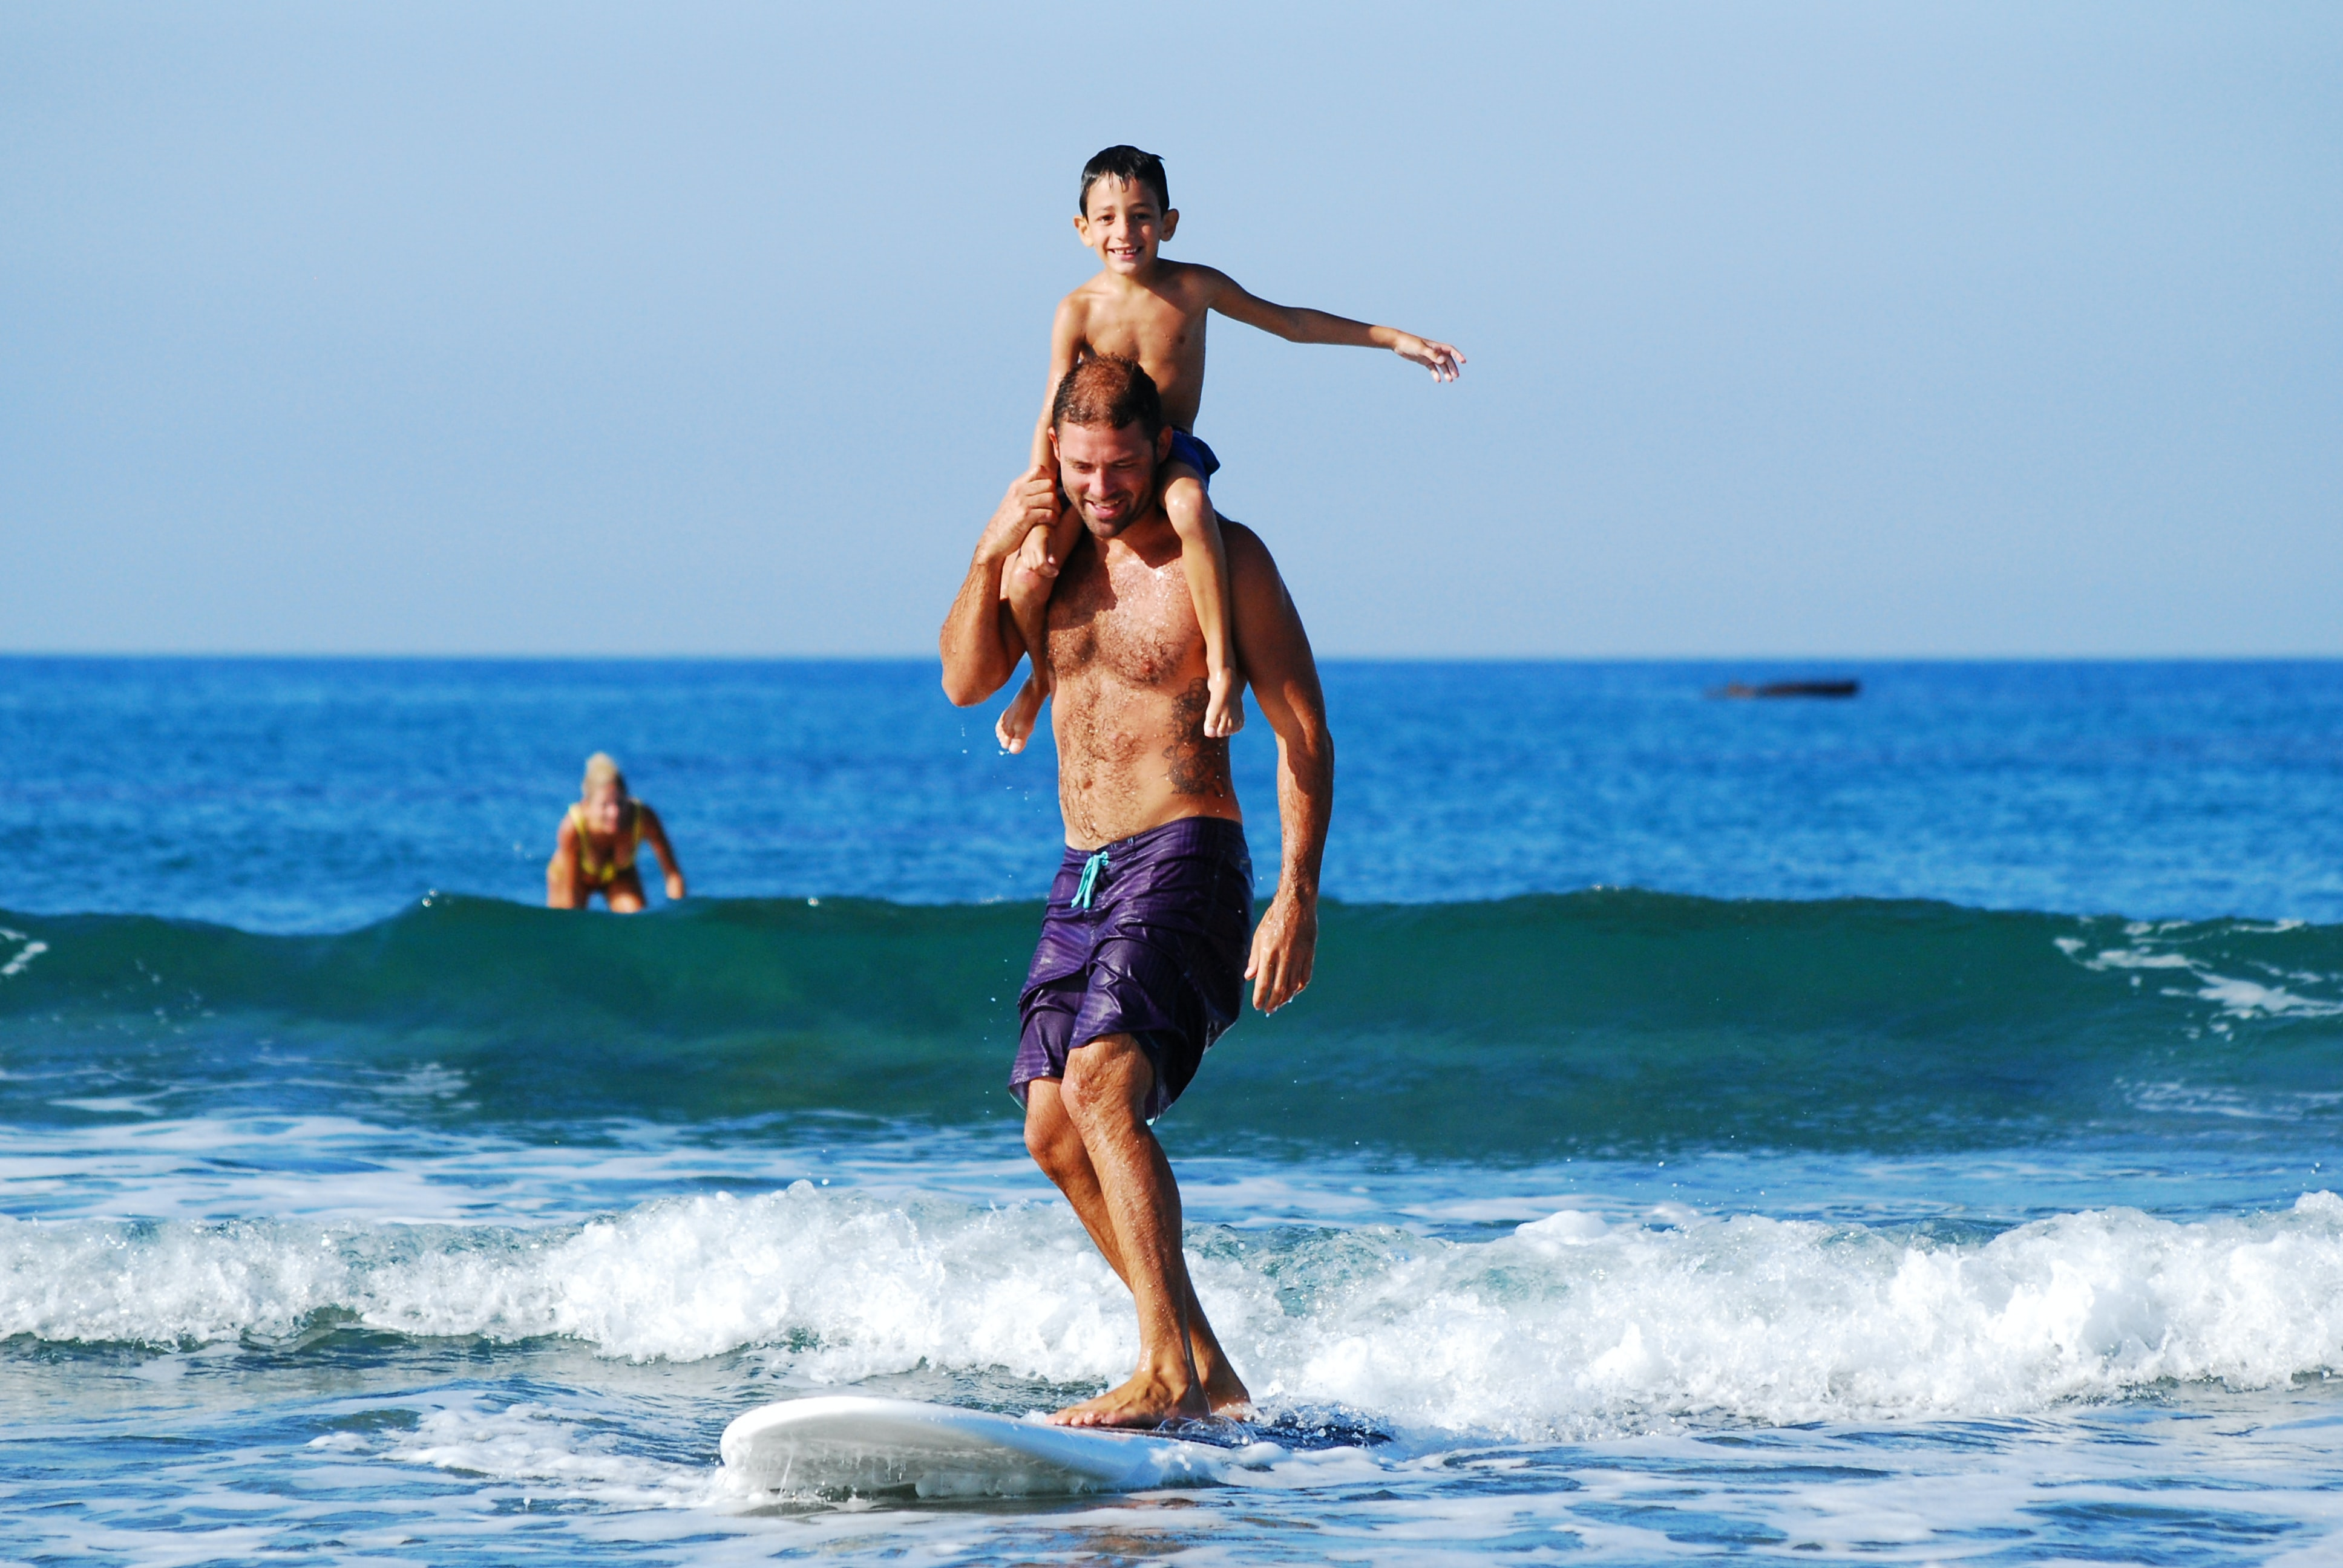 A man and his son surfing on a surfboard in the sea in Cyprus